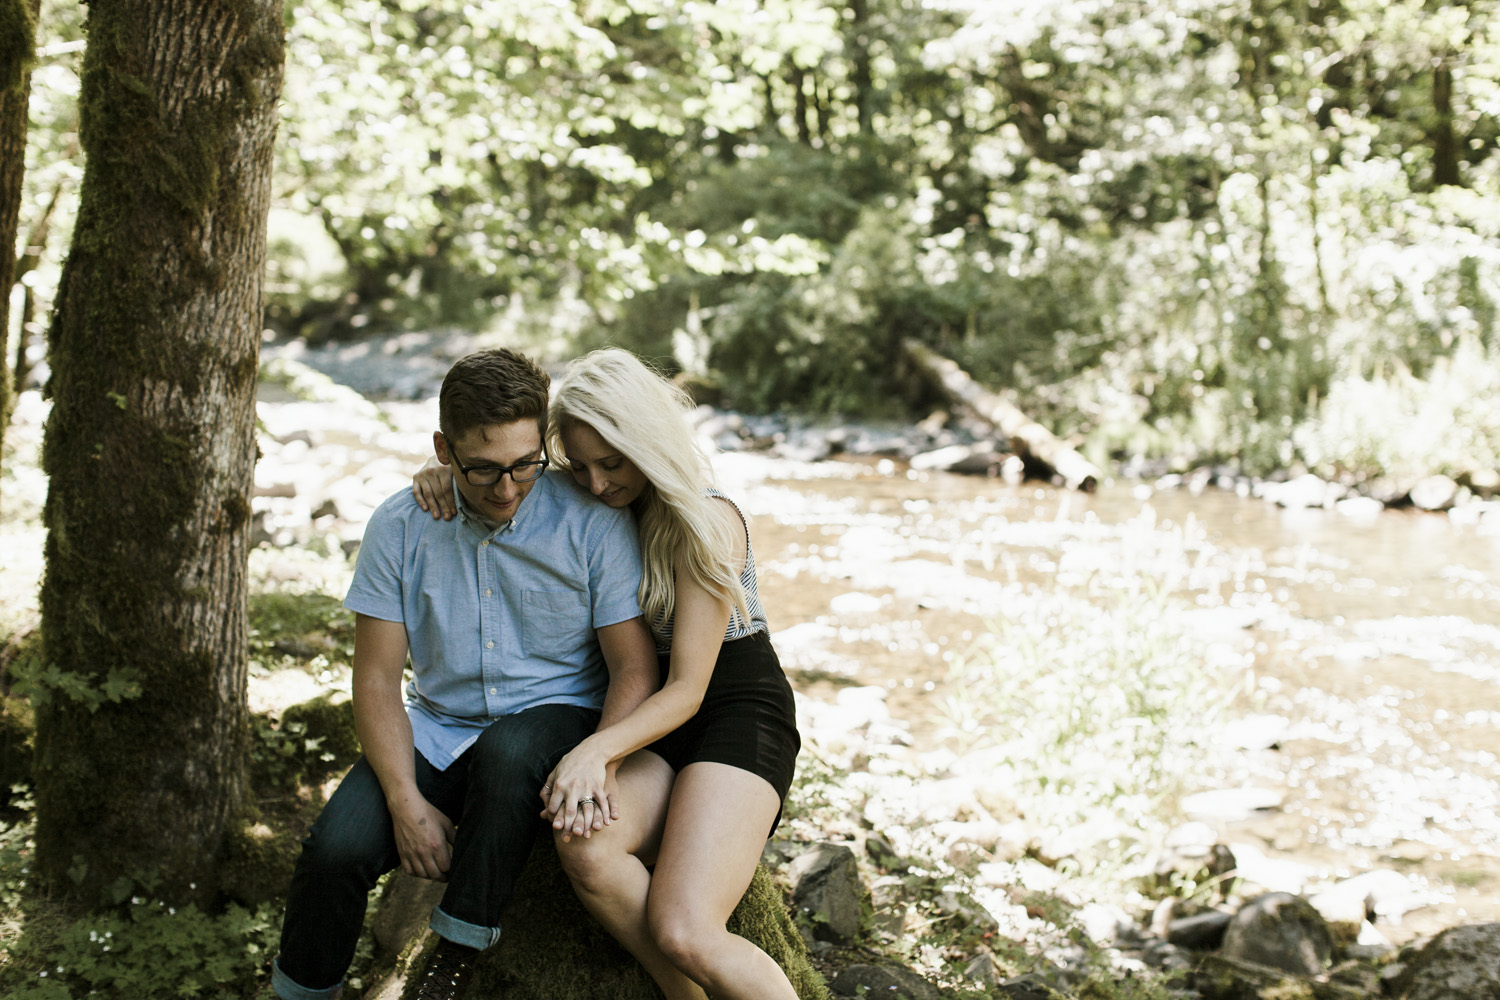 columbia-river-gorge-wahclella-falls-engagement-photos-sitting-under-tree